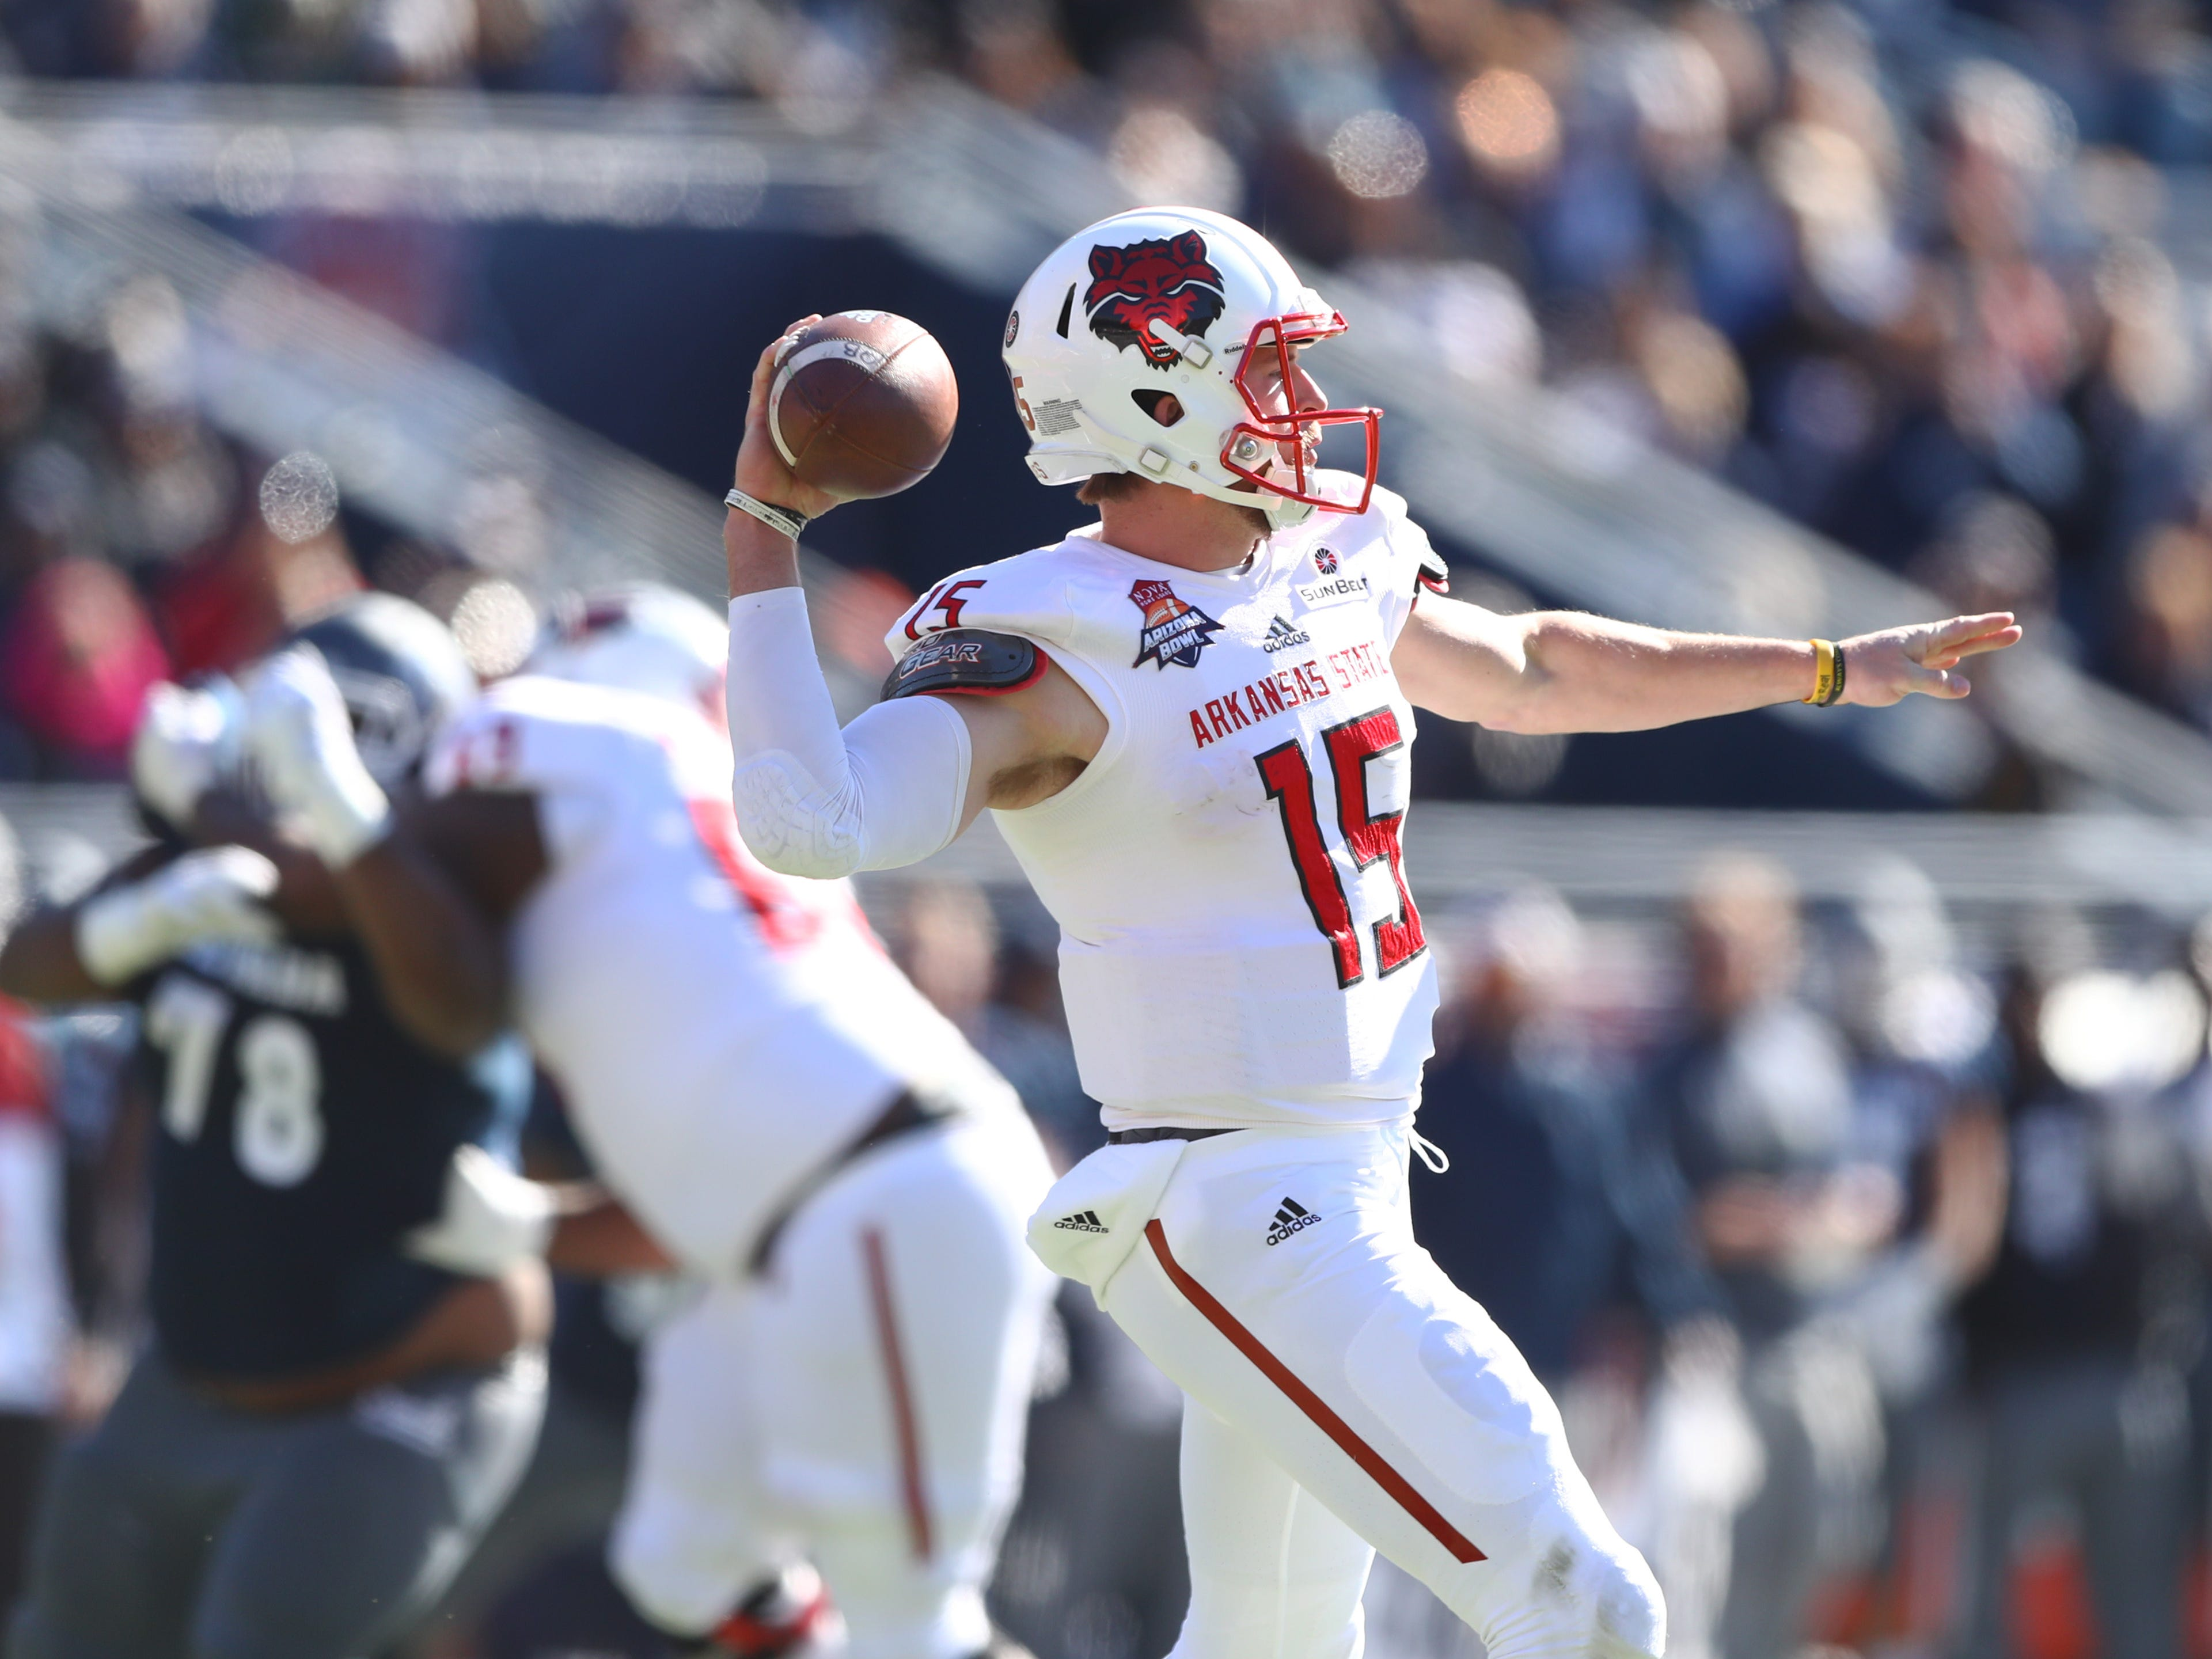 Dec 29, 2018; Tucson, AZ, USA; Arkansas State Red Wolves quarterback Justice Hansen (15) throws a pass against the Nevada Wolf Pack in the first half of the 2018 Arizona Bowl at Arizona Stadium.